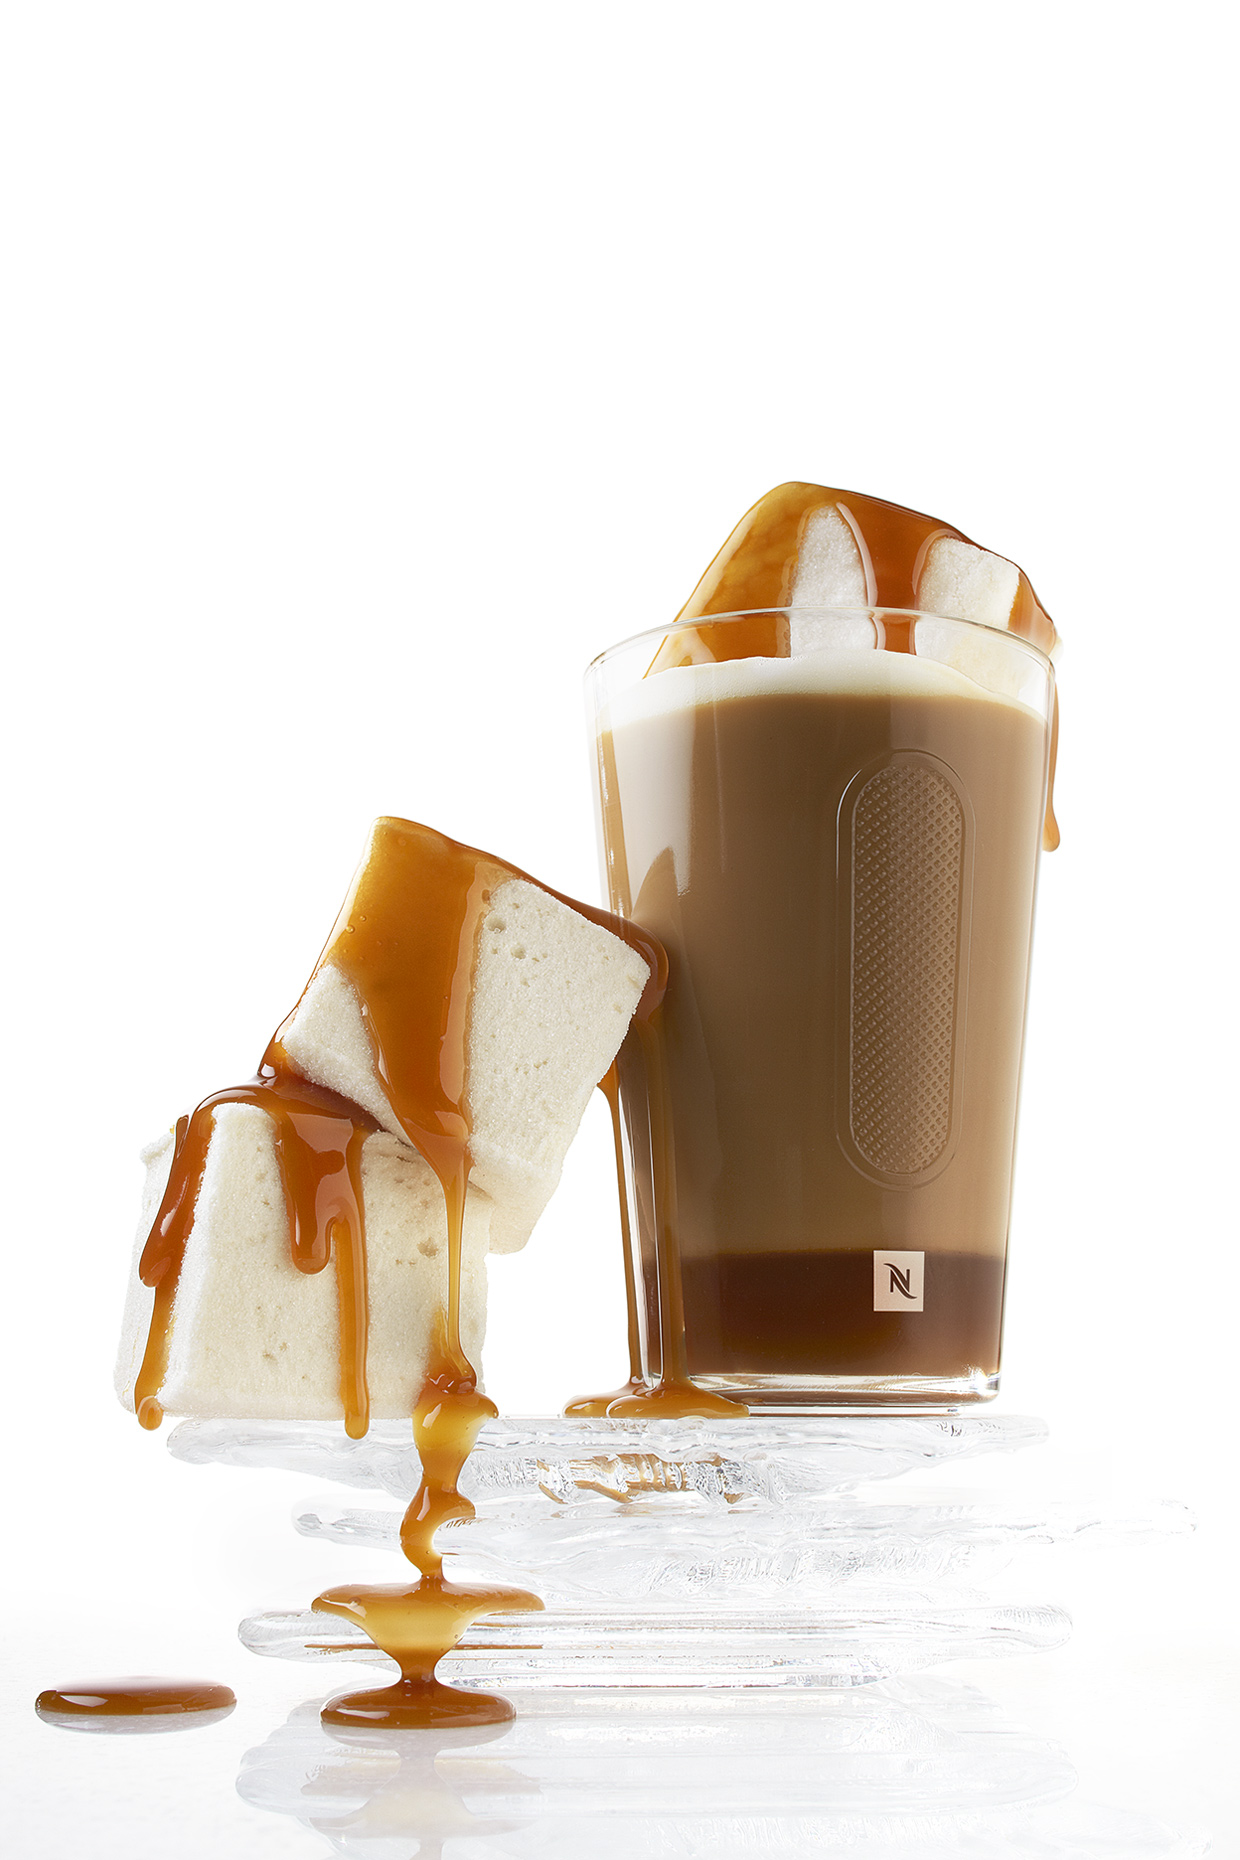 Caramel-Marshmallow-Coffee-44347